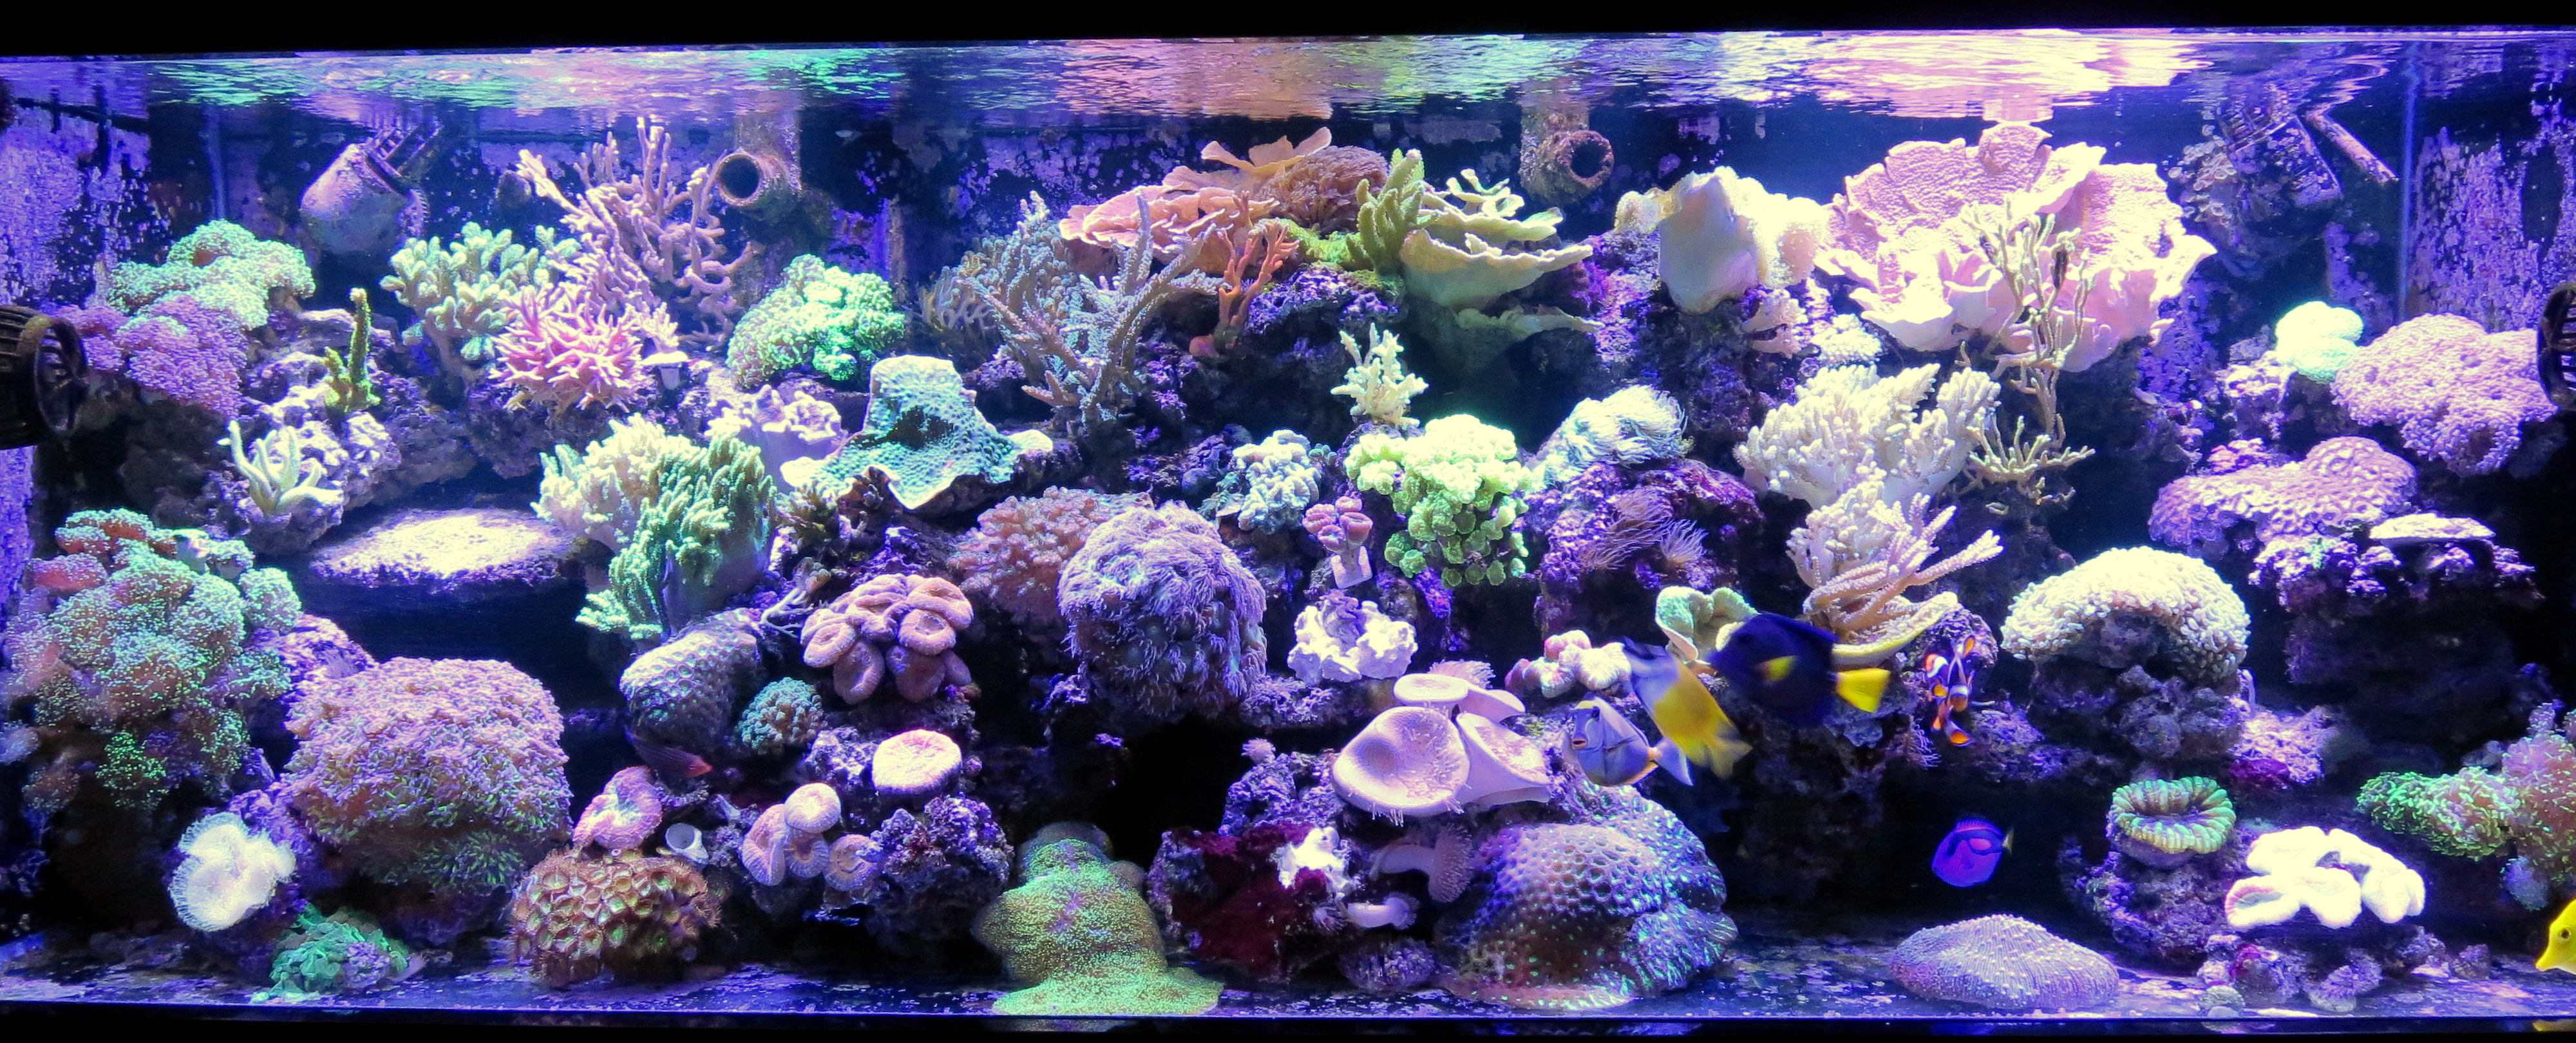 Pat-Kelly-home-reef-aquarium